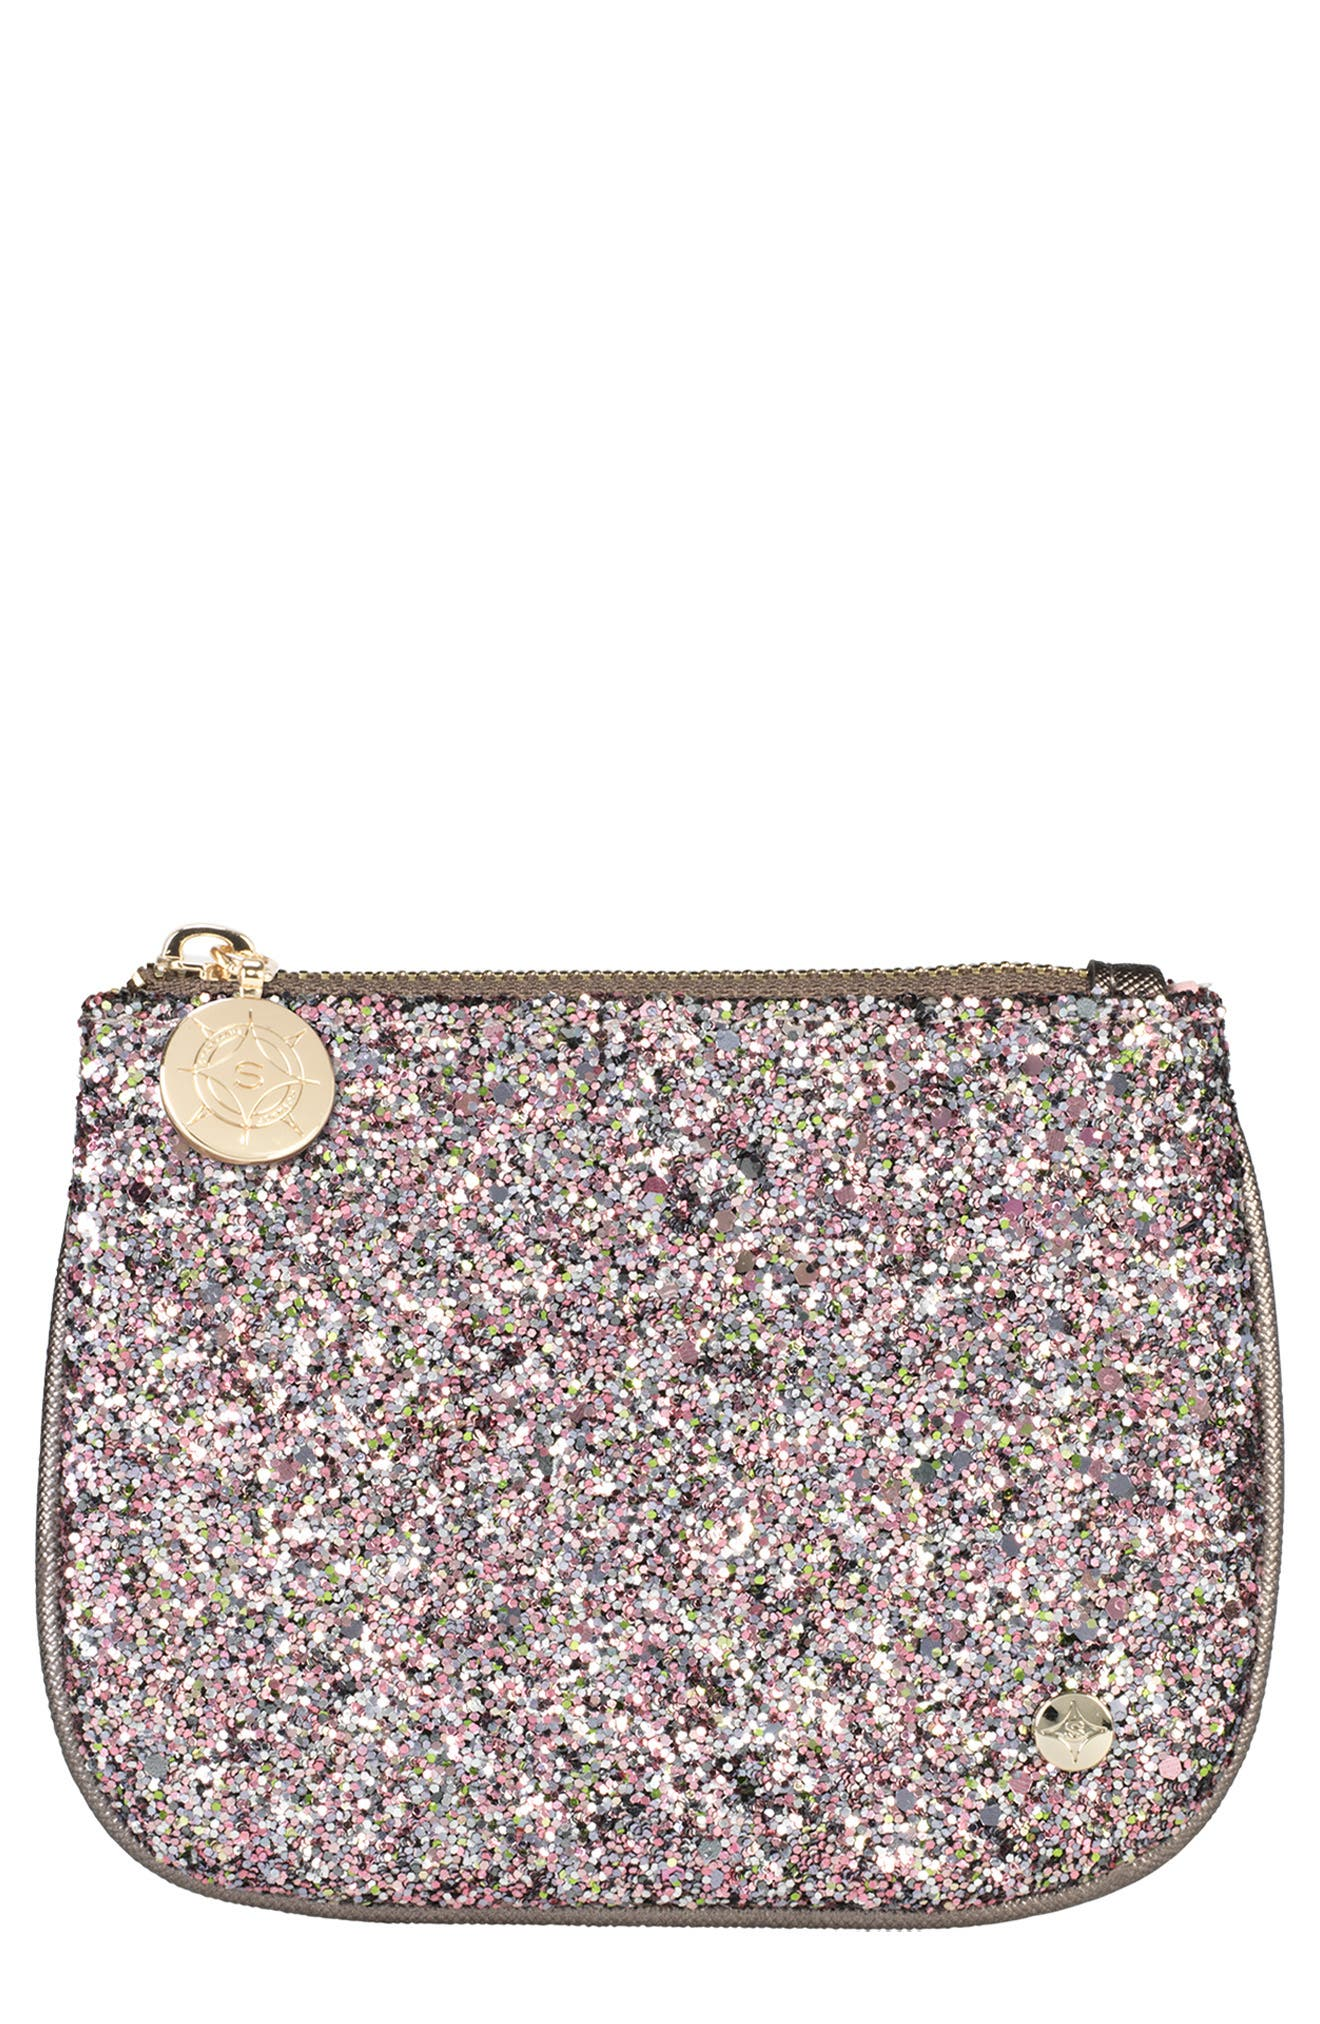 STEPHANIE JOHNSON Mini Flat Pouch in Hollywood Pink